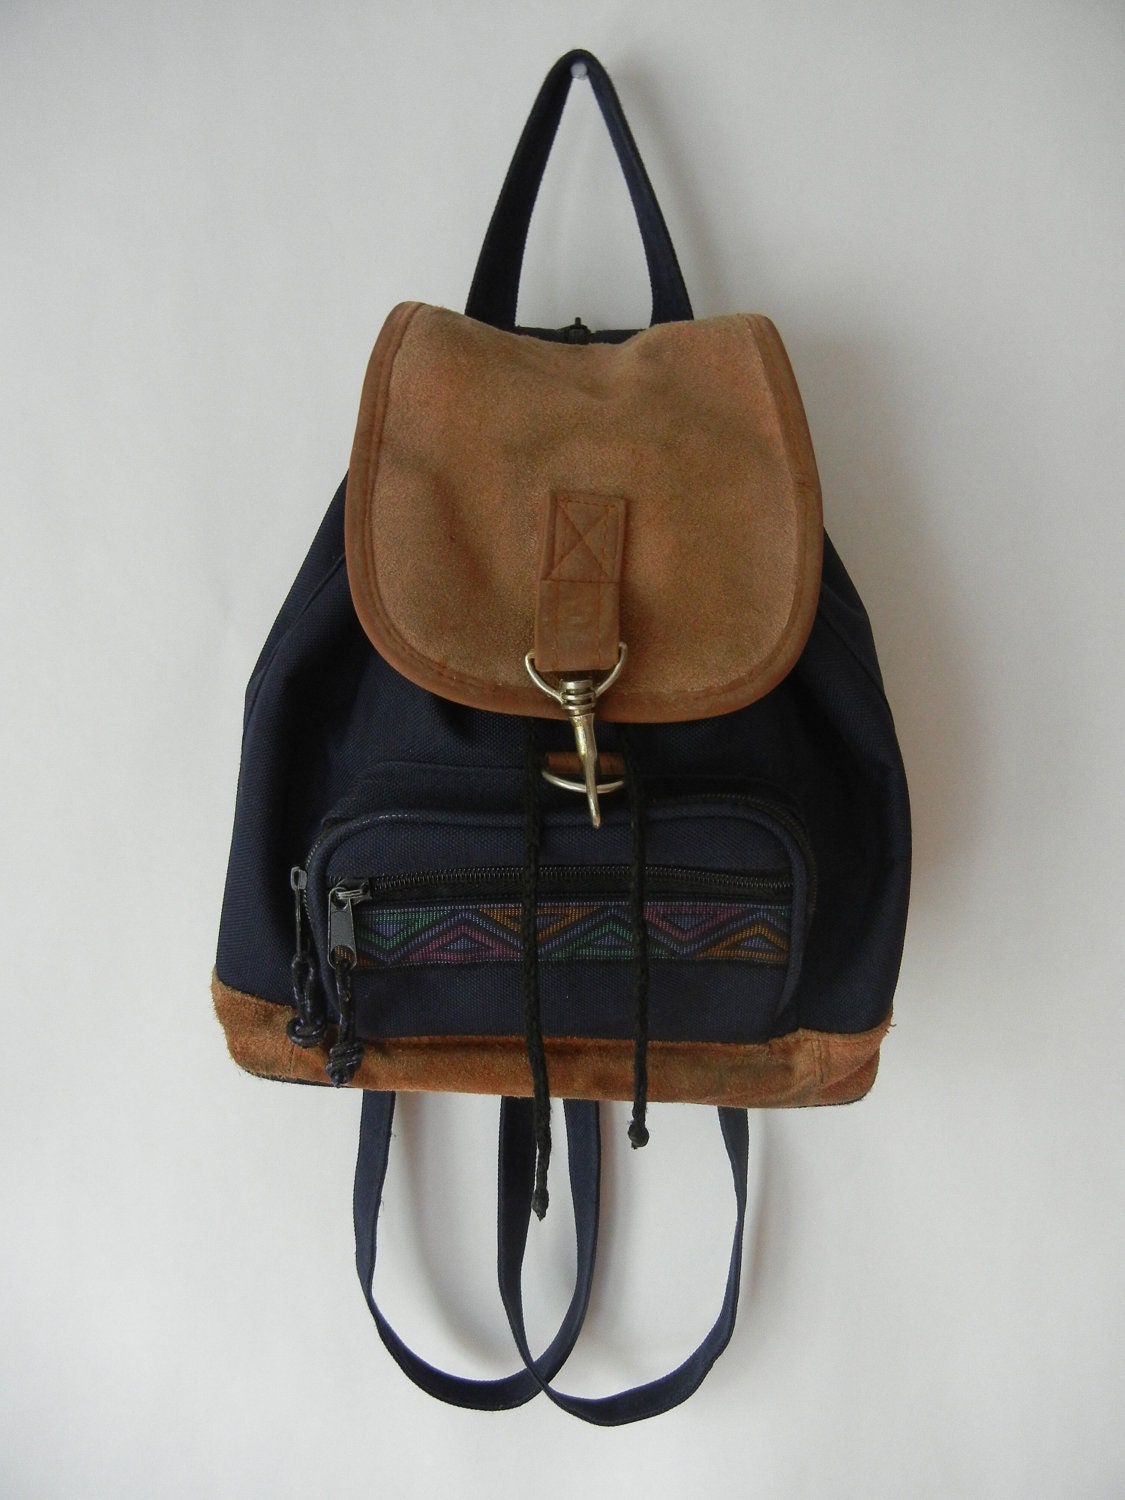 90s backpack purse